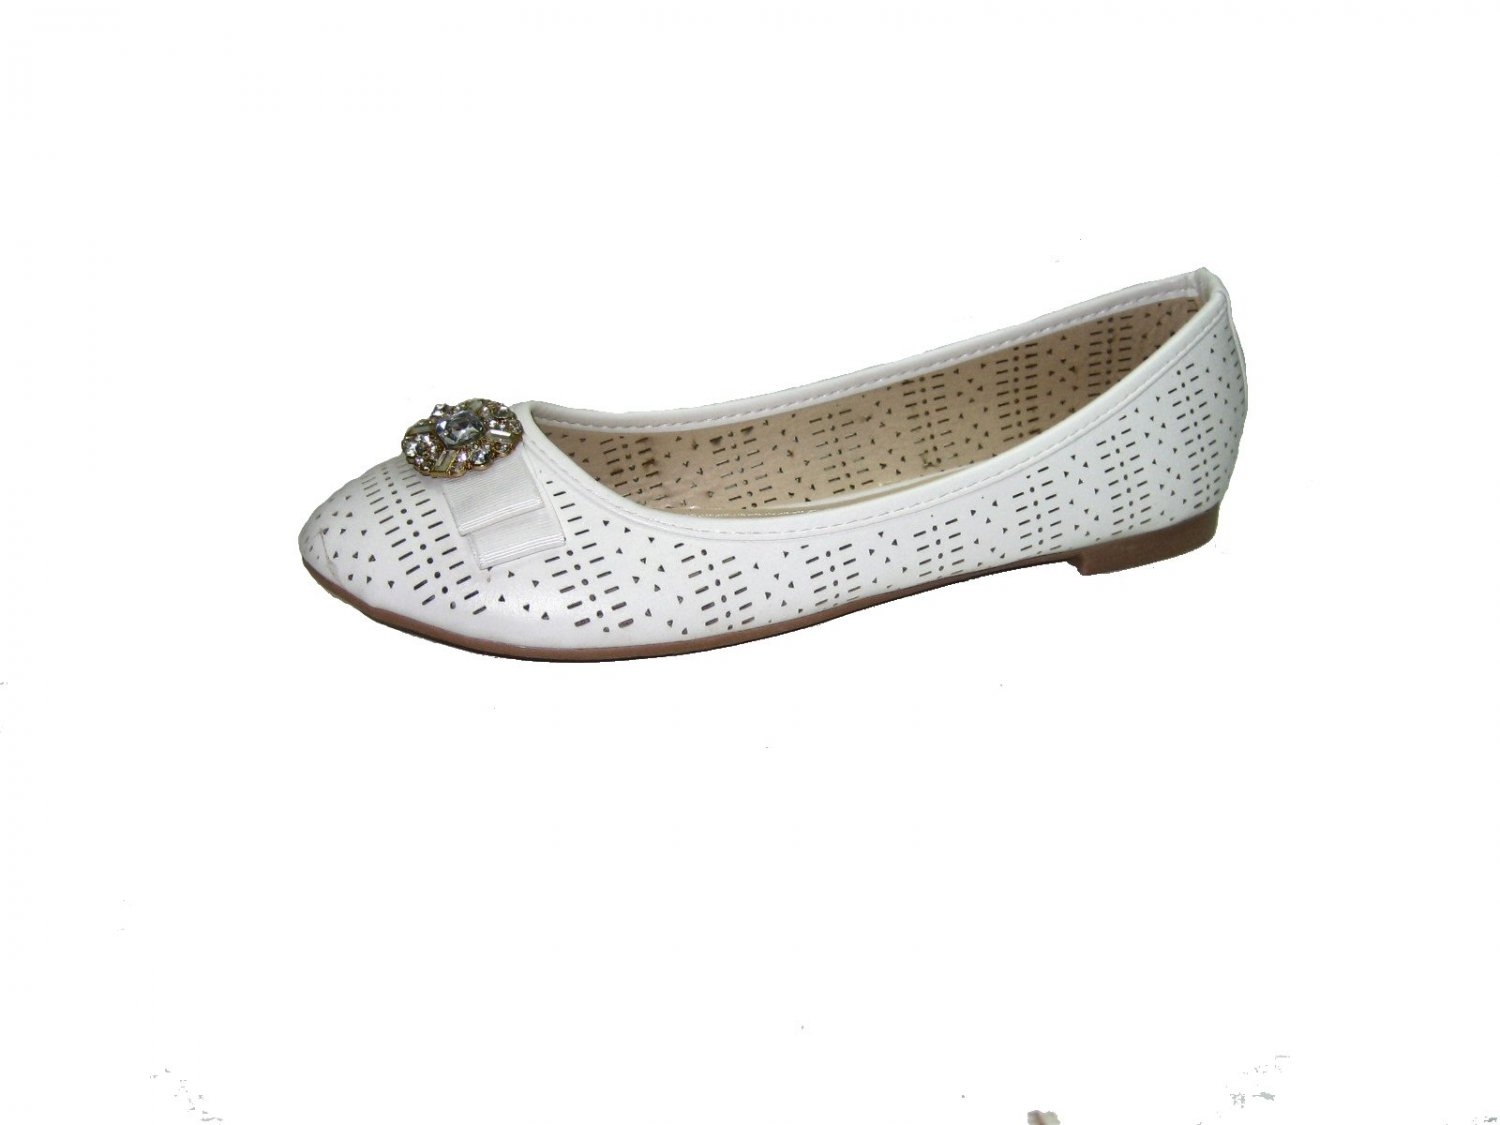 Top Moda SB-25 ballerina flats slip on pumps rhinestone bejeweled bow toe shoes white size 10